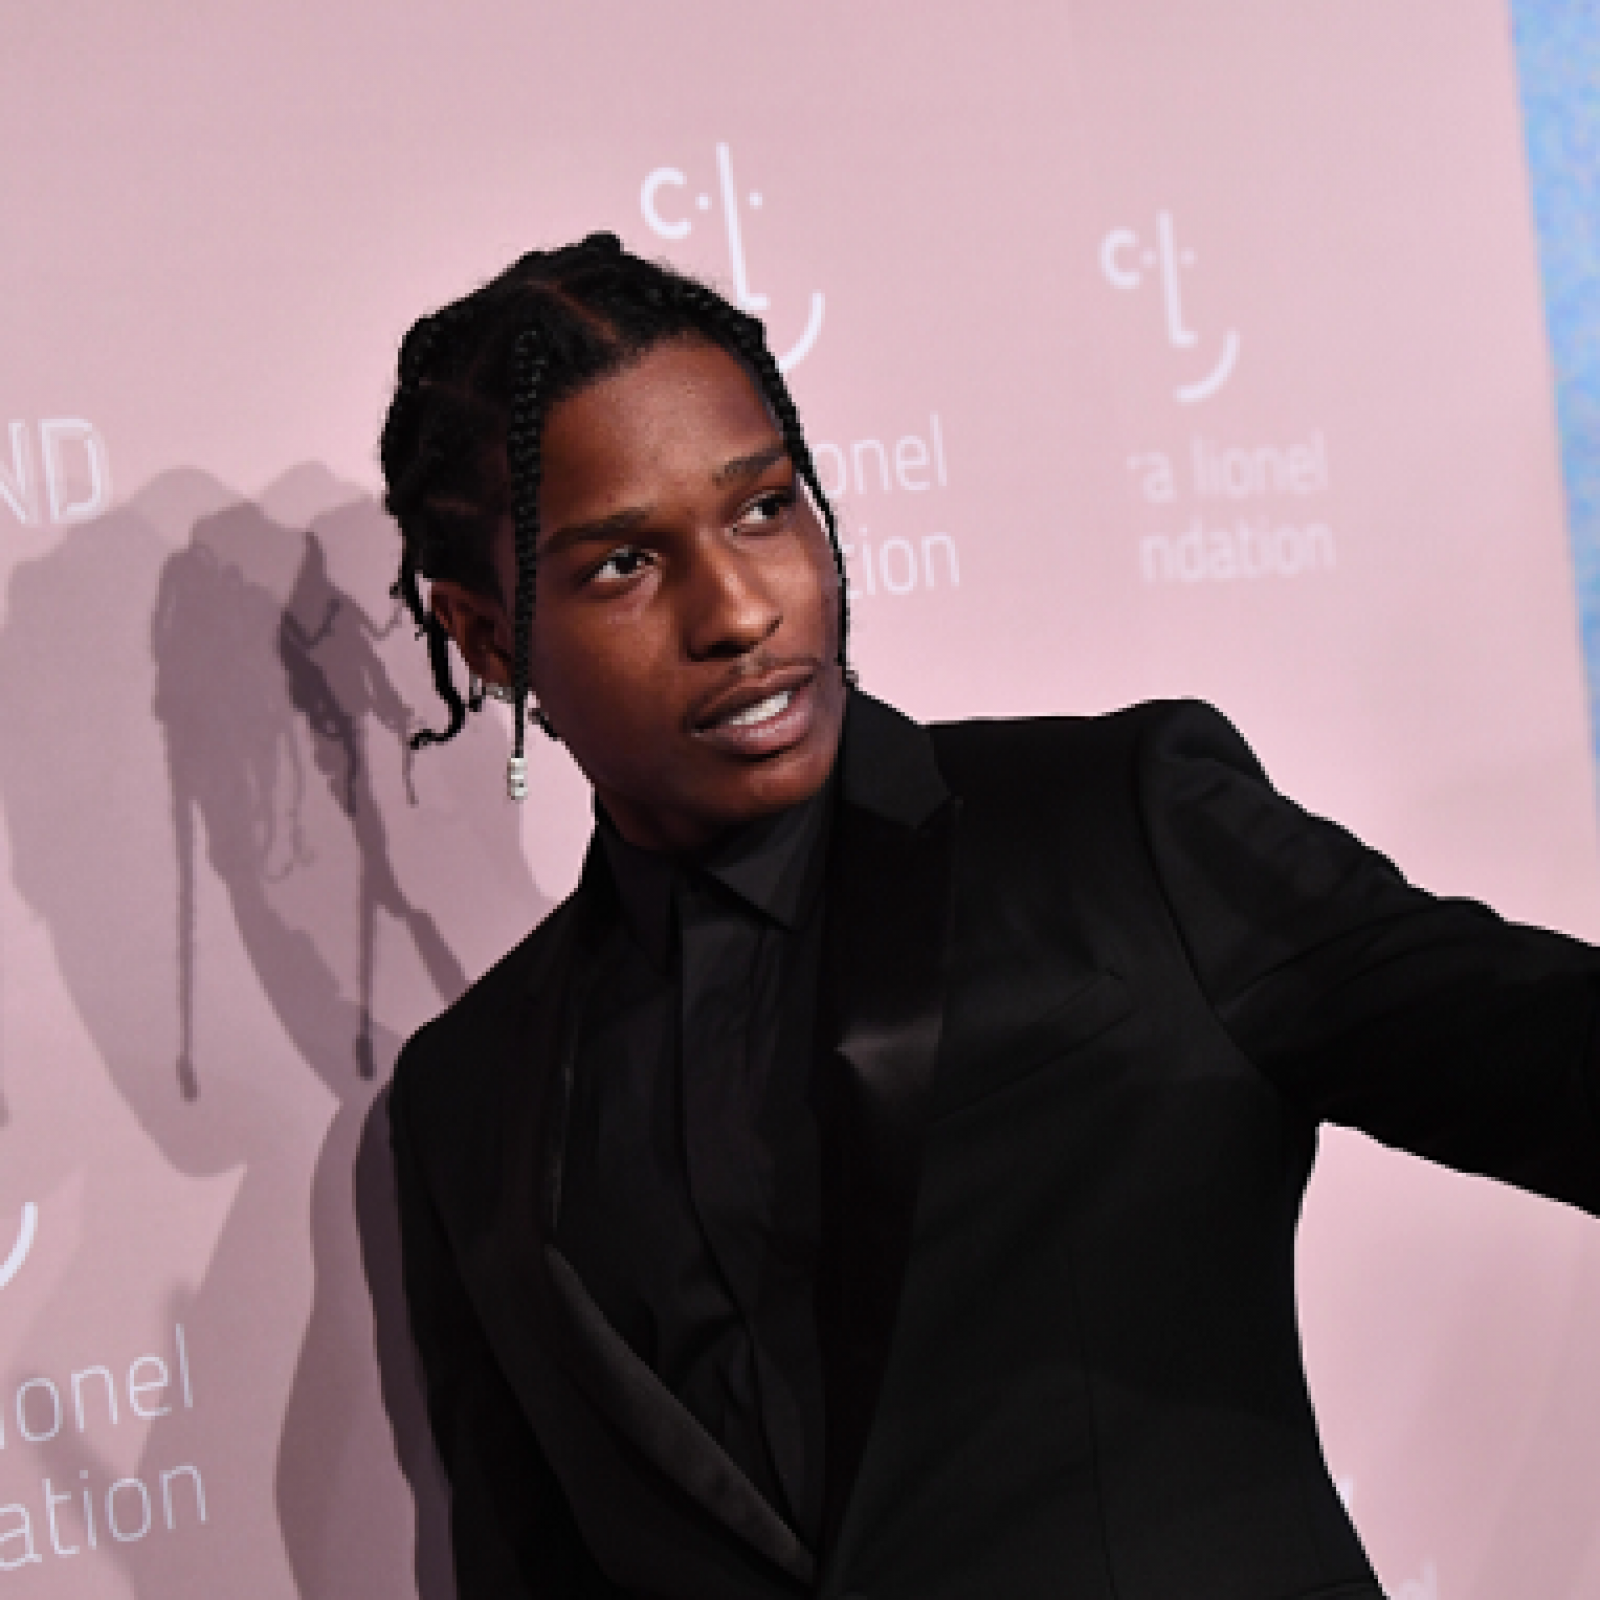 ASAP Rocky Update: Rapper Could be Sentenced to 2 Years